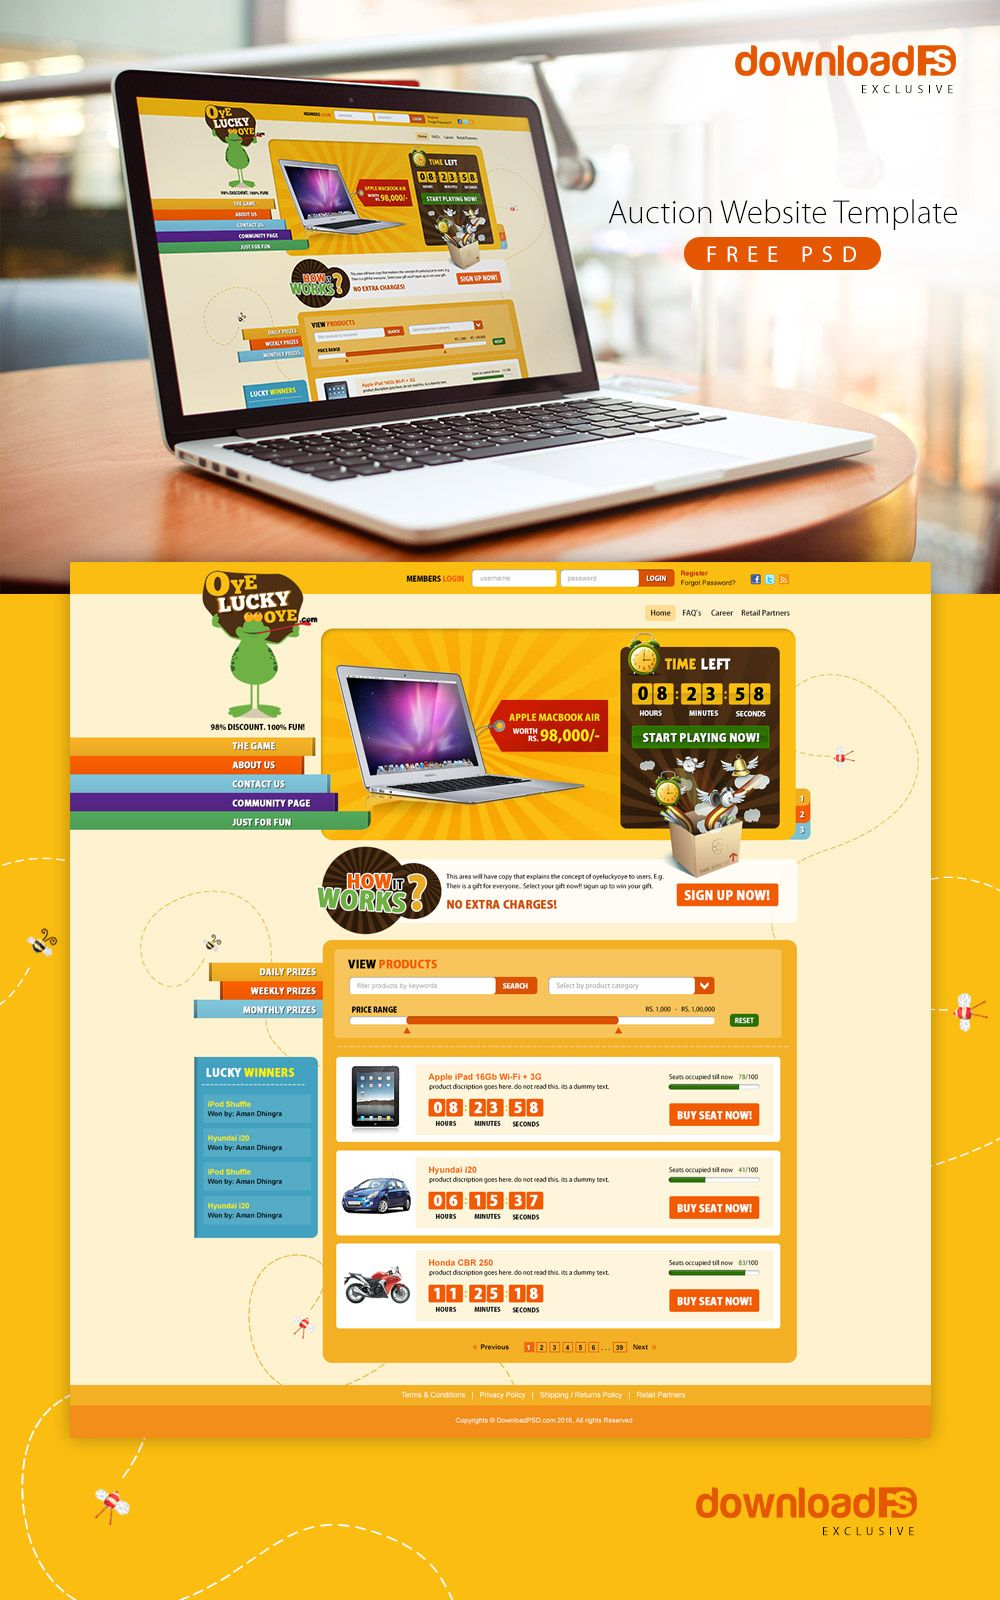 Download Free Auction Website Template Free Psd Download Psd Download Free Psd Resources For Designers Free Website Templates Website Template Auction Themes